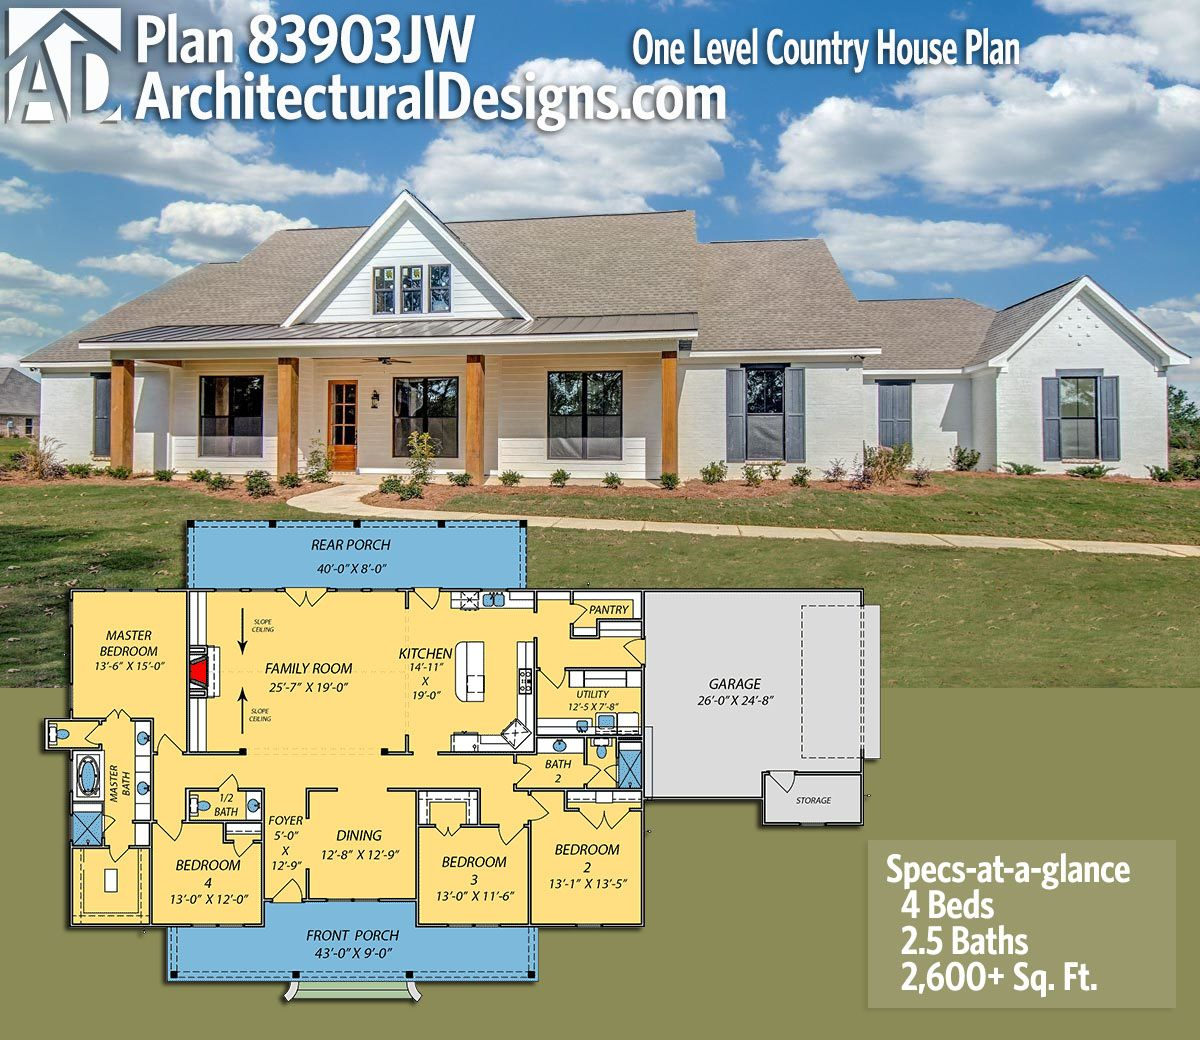 Plan 83903jw one level country house plan architectural for Architect home plans